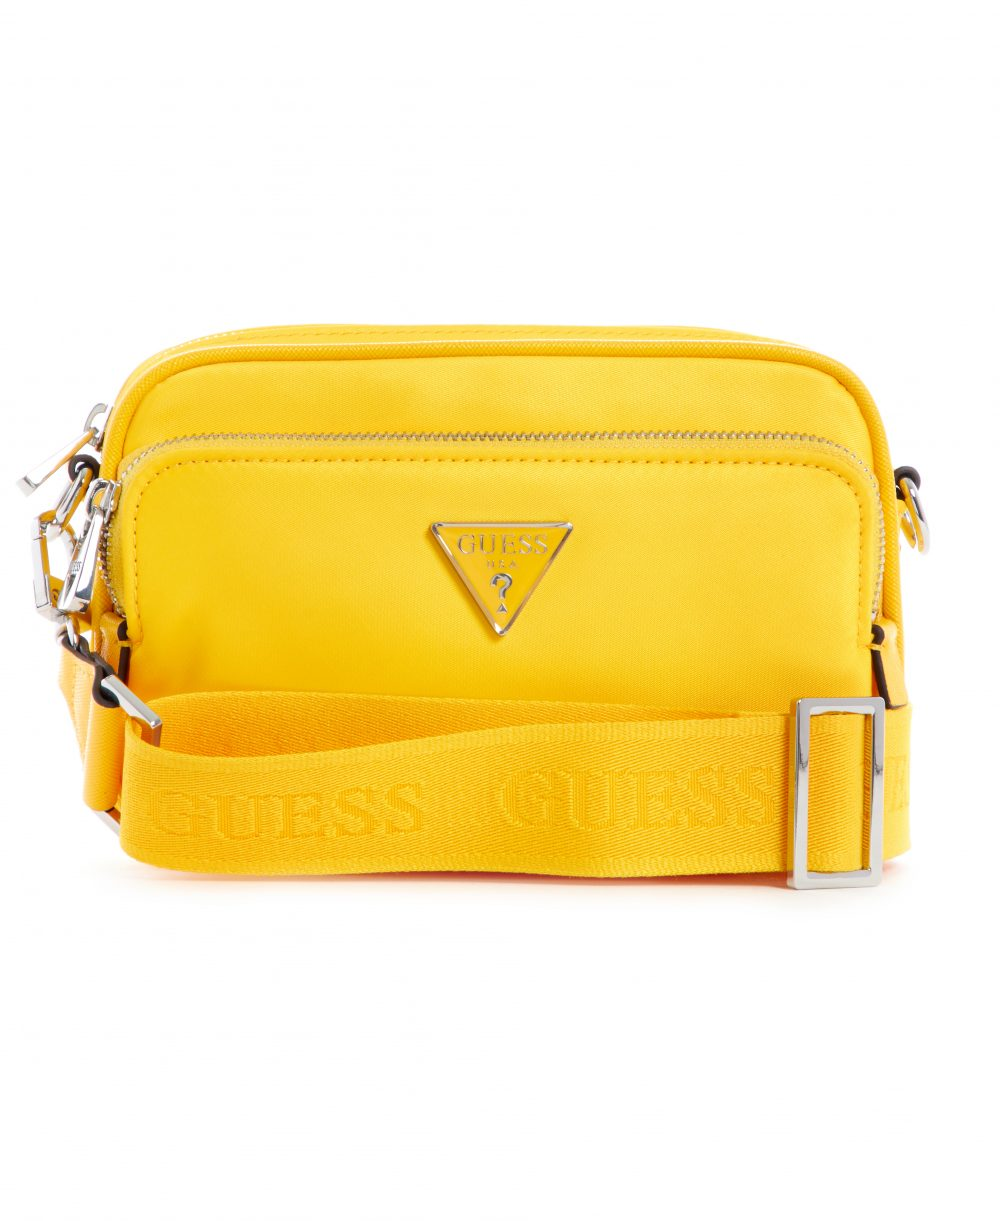 Guess CROSSBODY CAME*